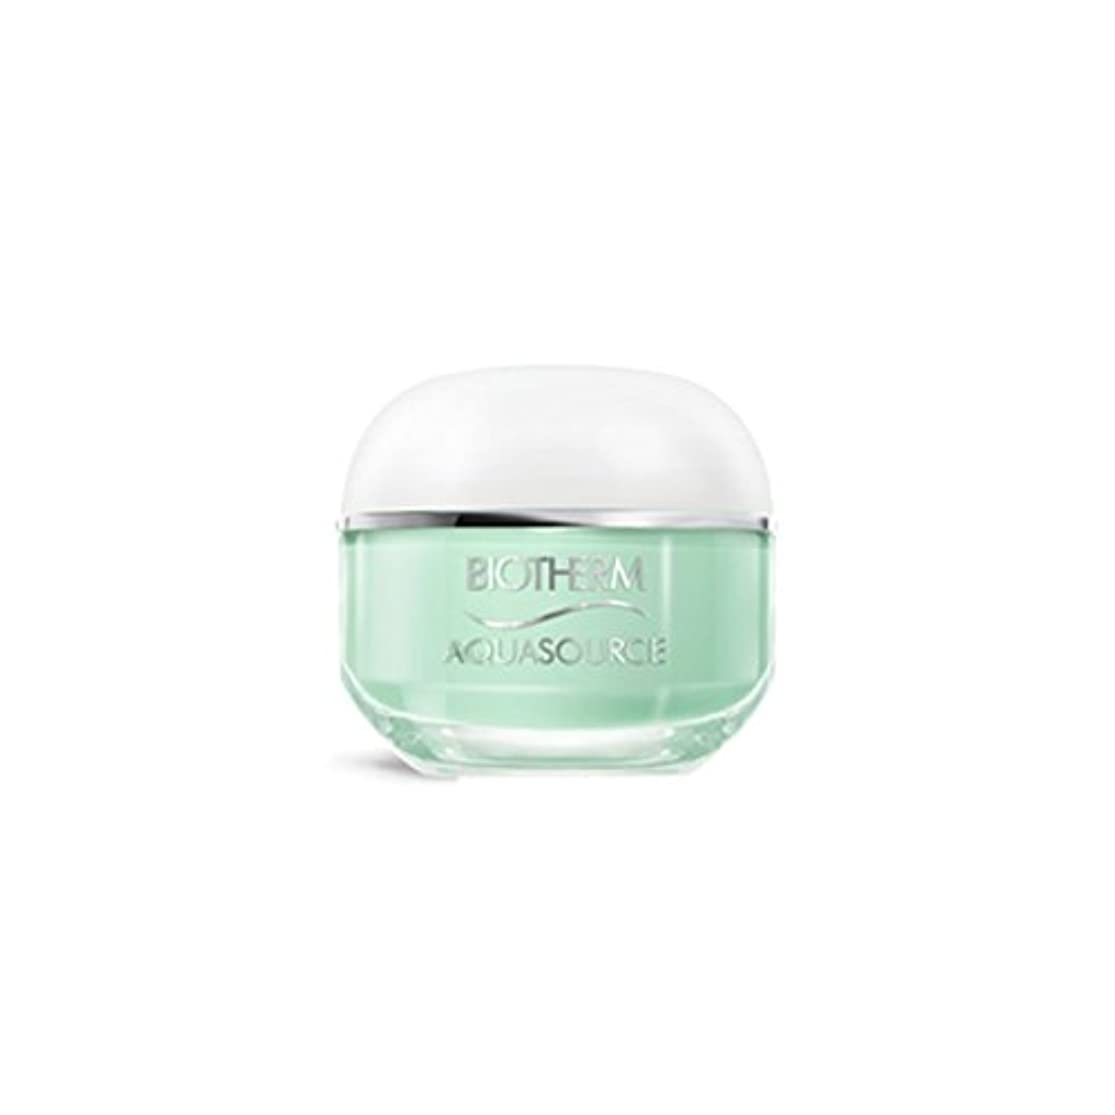 なしで倉庫シャークビオテルム Aquasource Gel Intense Regenerating Moisturizing Gel - For Normal/Combination Skin 50ml/1.69oz並行輸入品